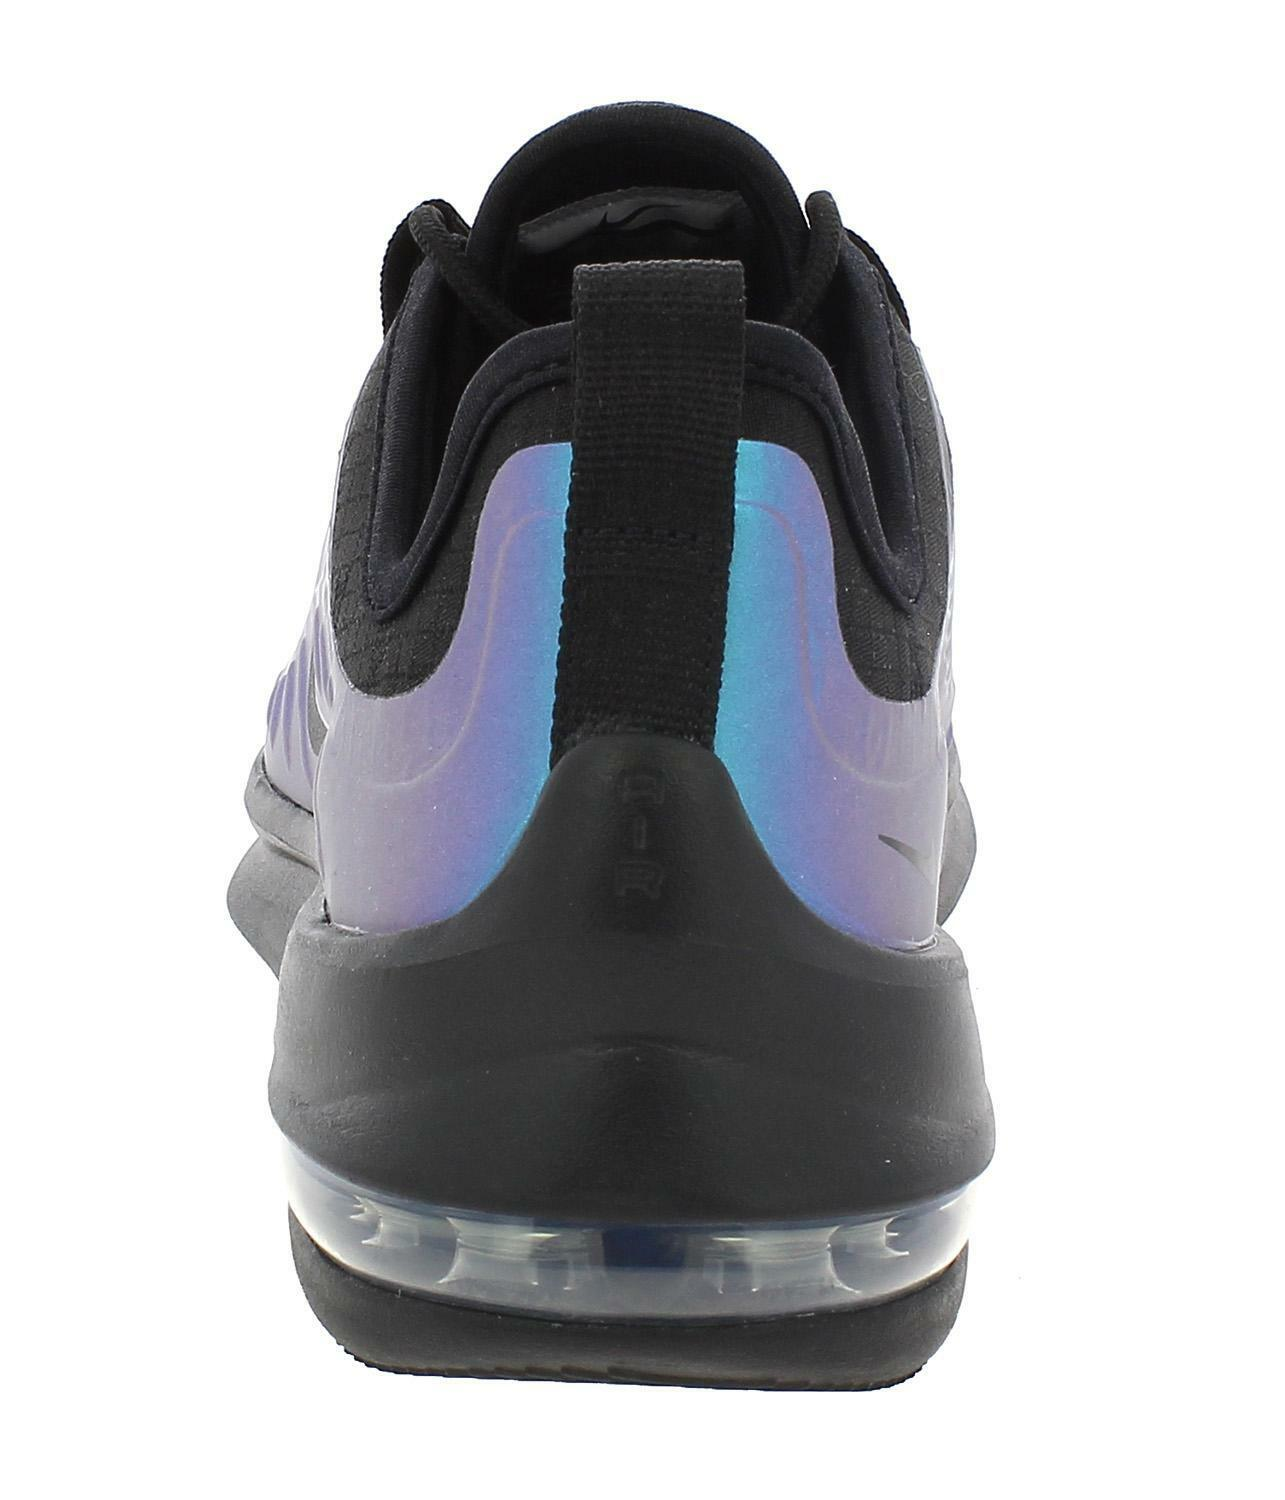 air max axis prem uomo